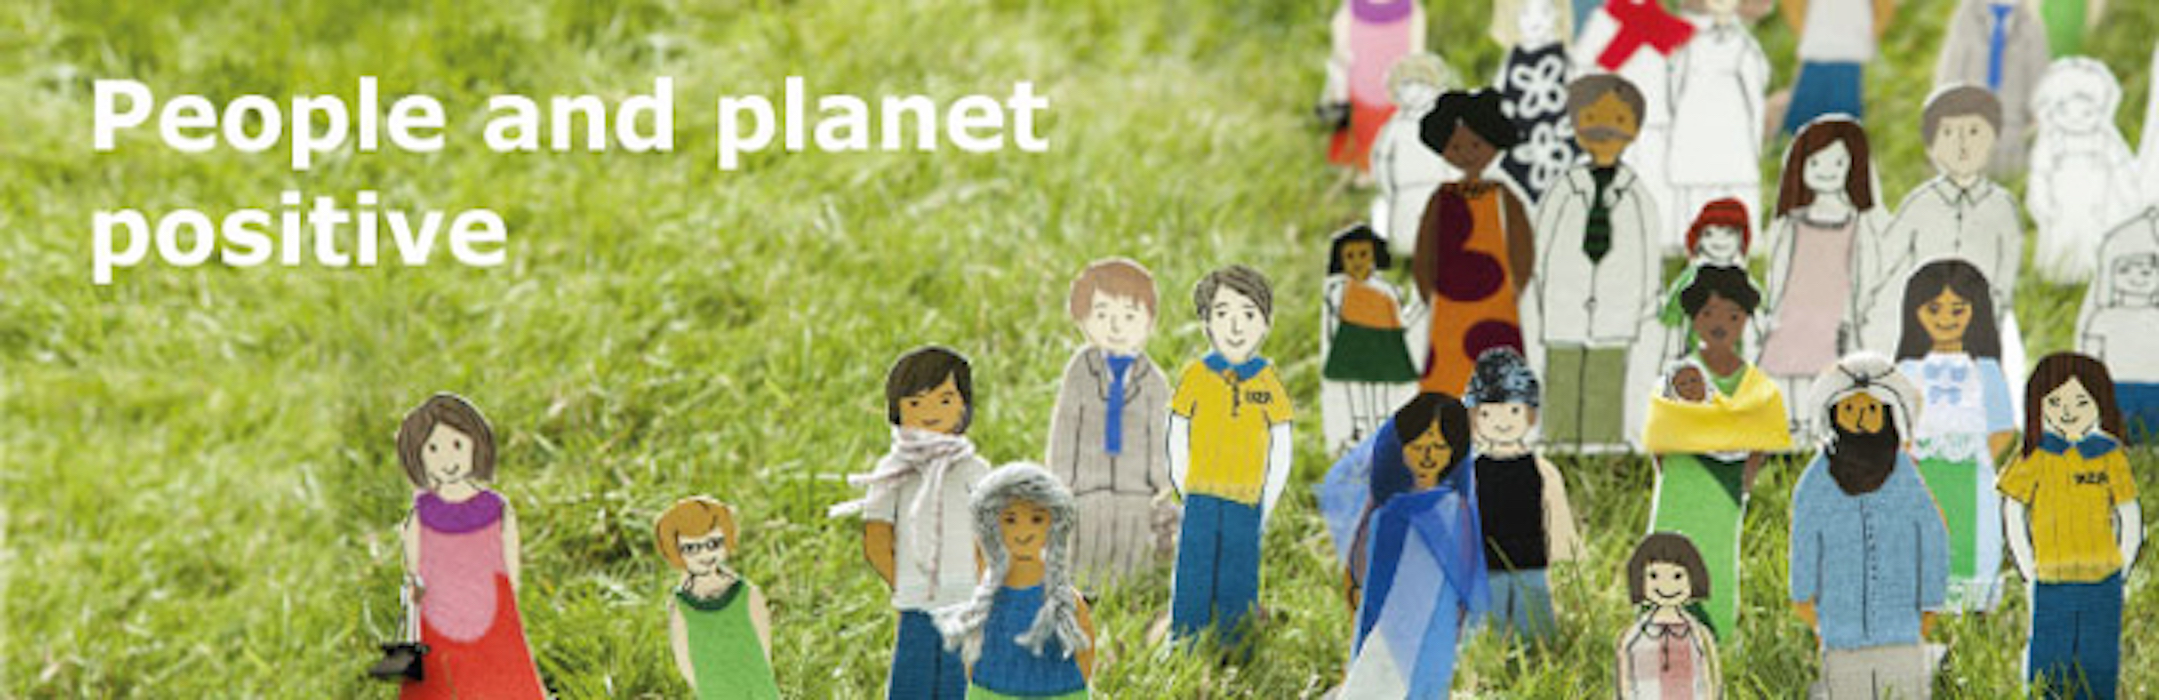 Anche Second Life nel People and planet positive